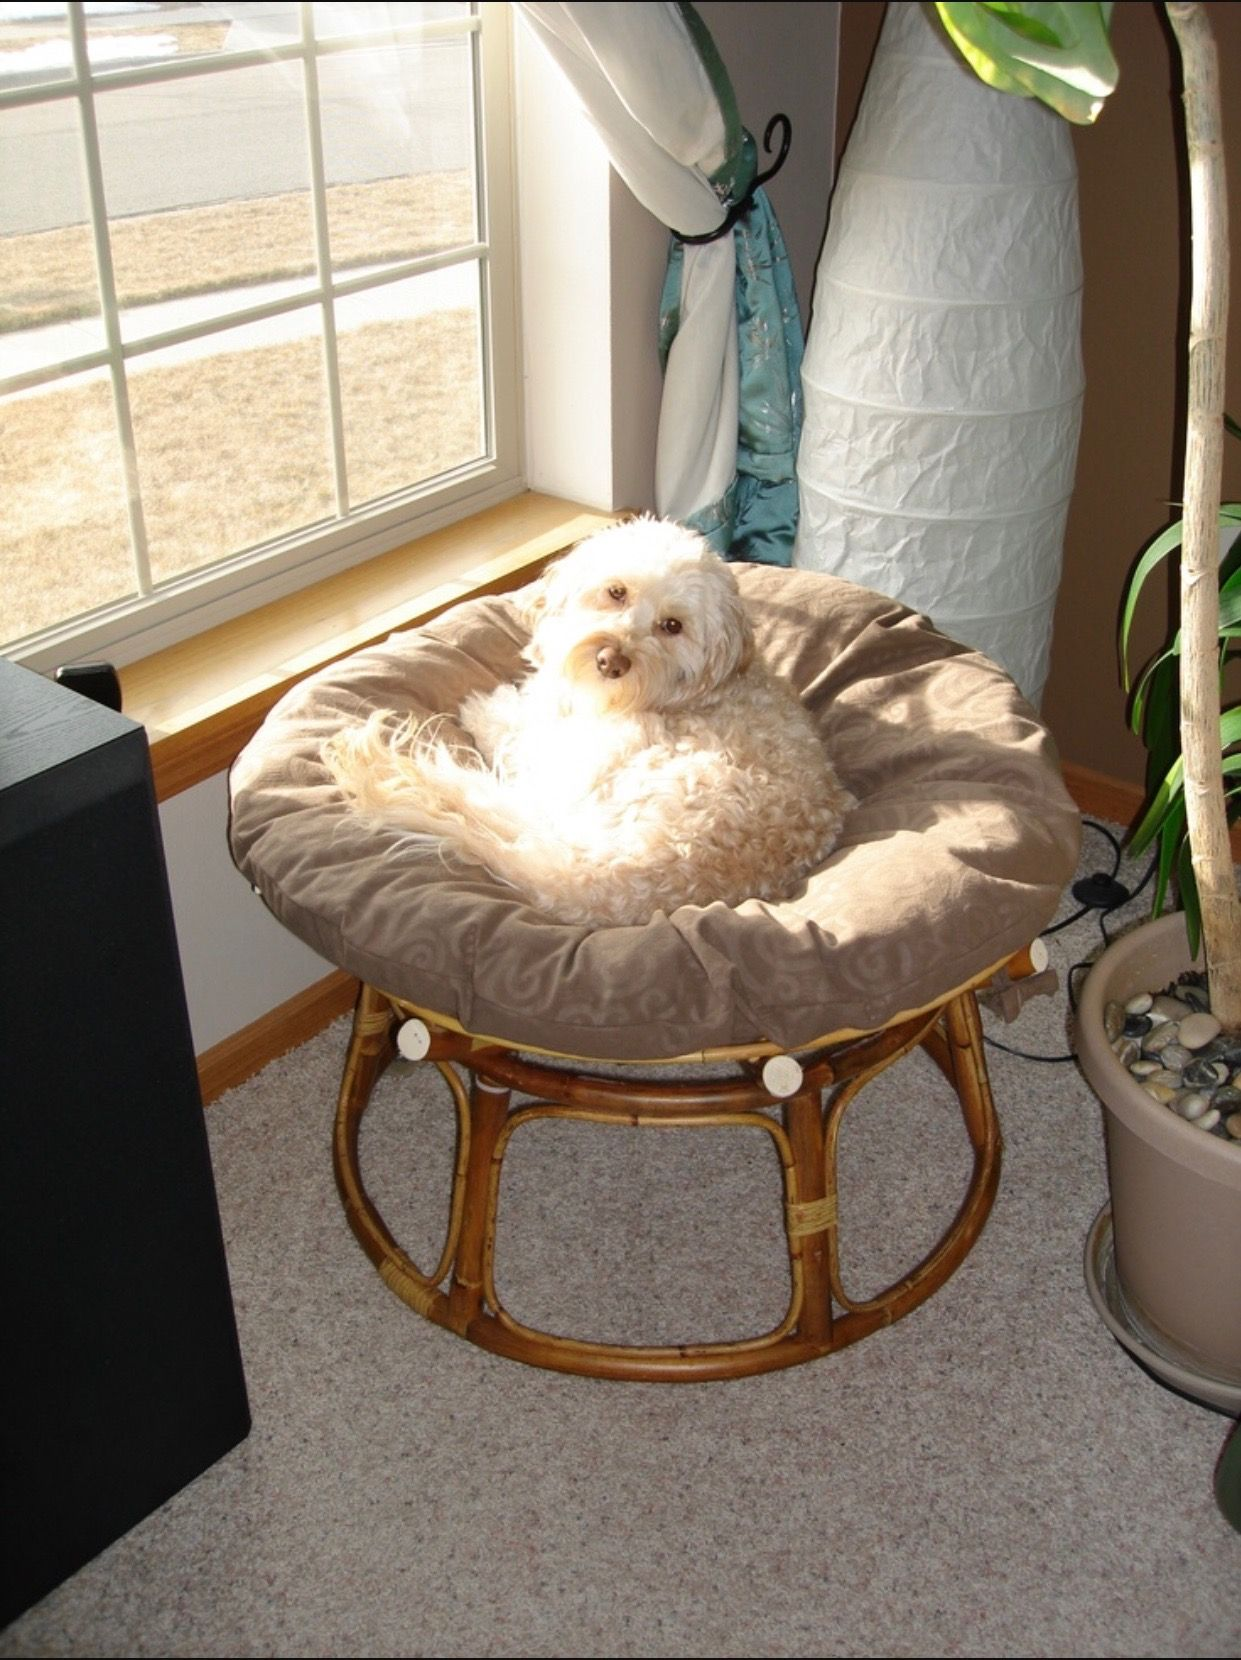 Handmade Dog Bed From A Papasan Chair Frame   Very Cute Owner!